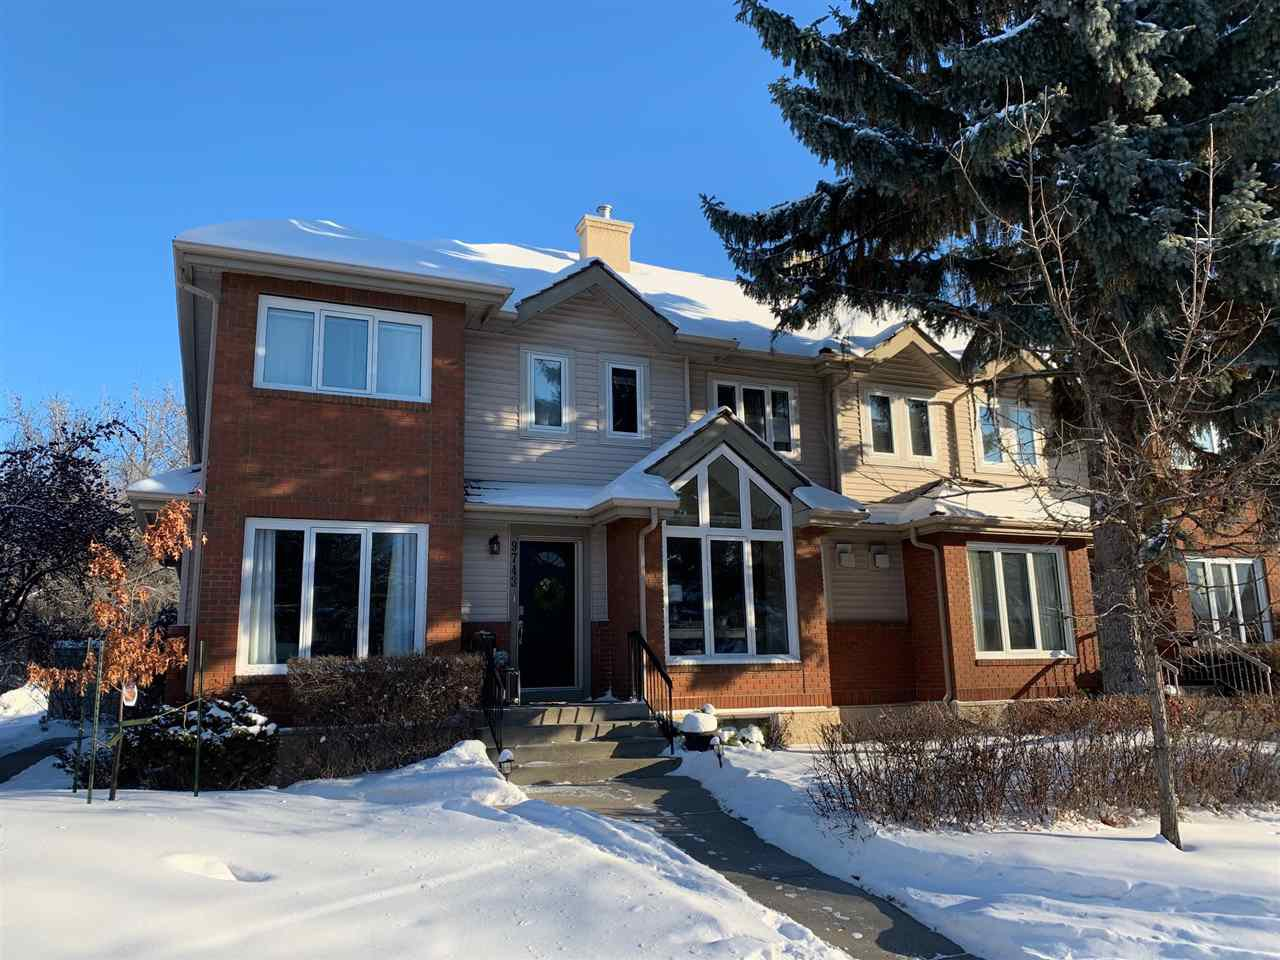 Main Photo: 9743 91 Street in Edmonton: Zone 18 Townhouse for sale : MLS®# E4184902